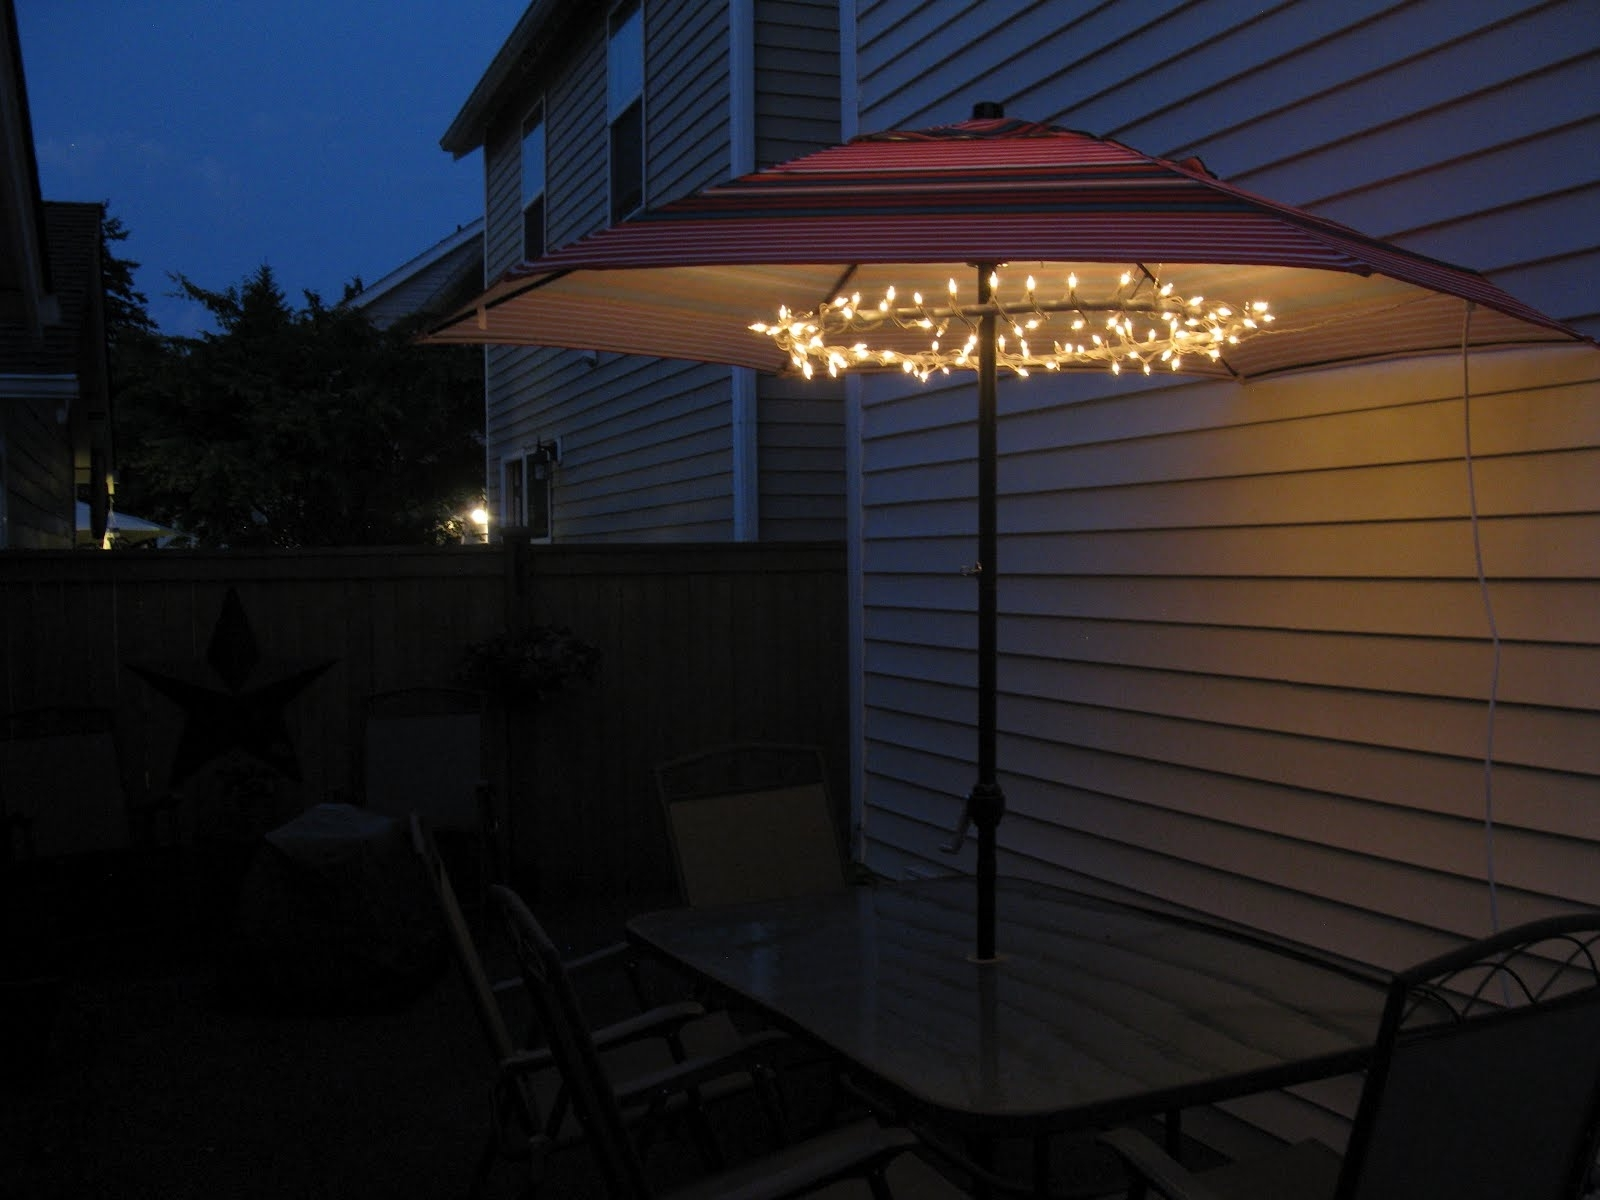 Amazing Patio Umbrella Lights — Wilson Home Ideas : Beautiful Patio Pertaining To 2019 Solar Patio Umbrellas (Gallery 6 of 20)